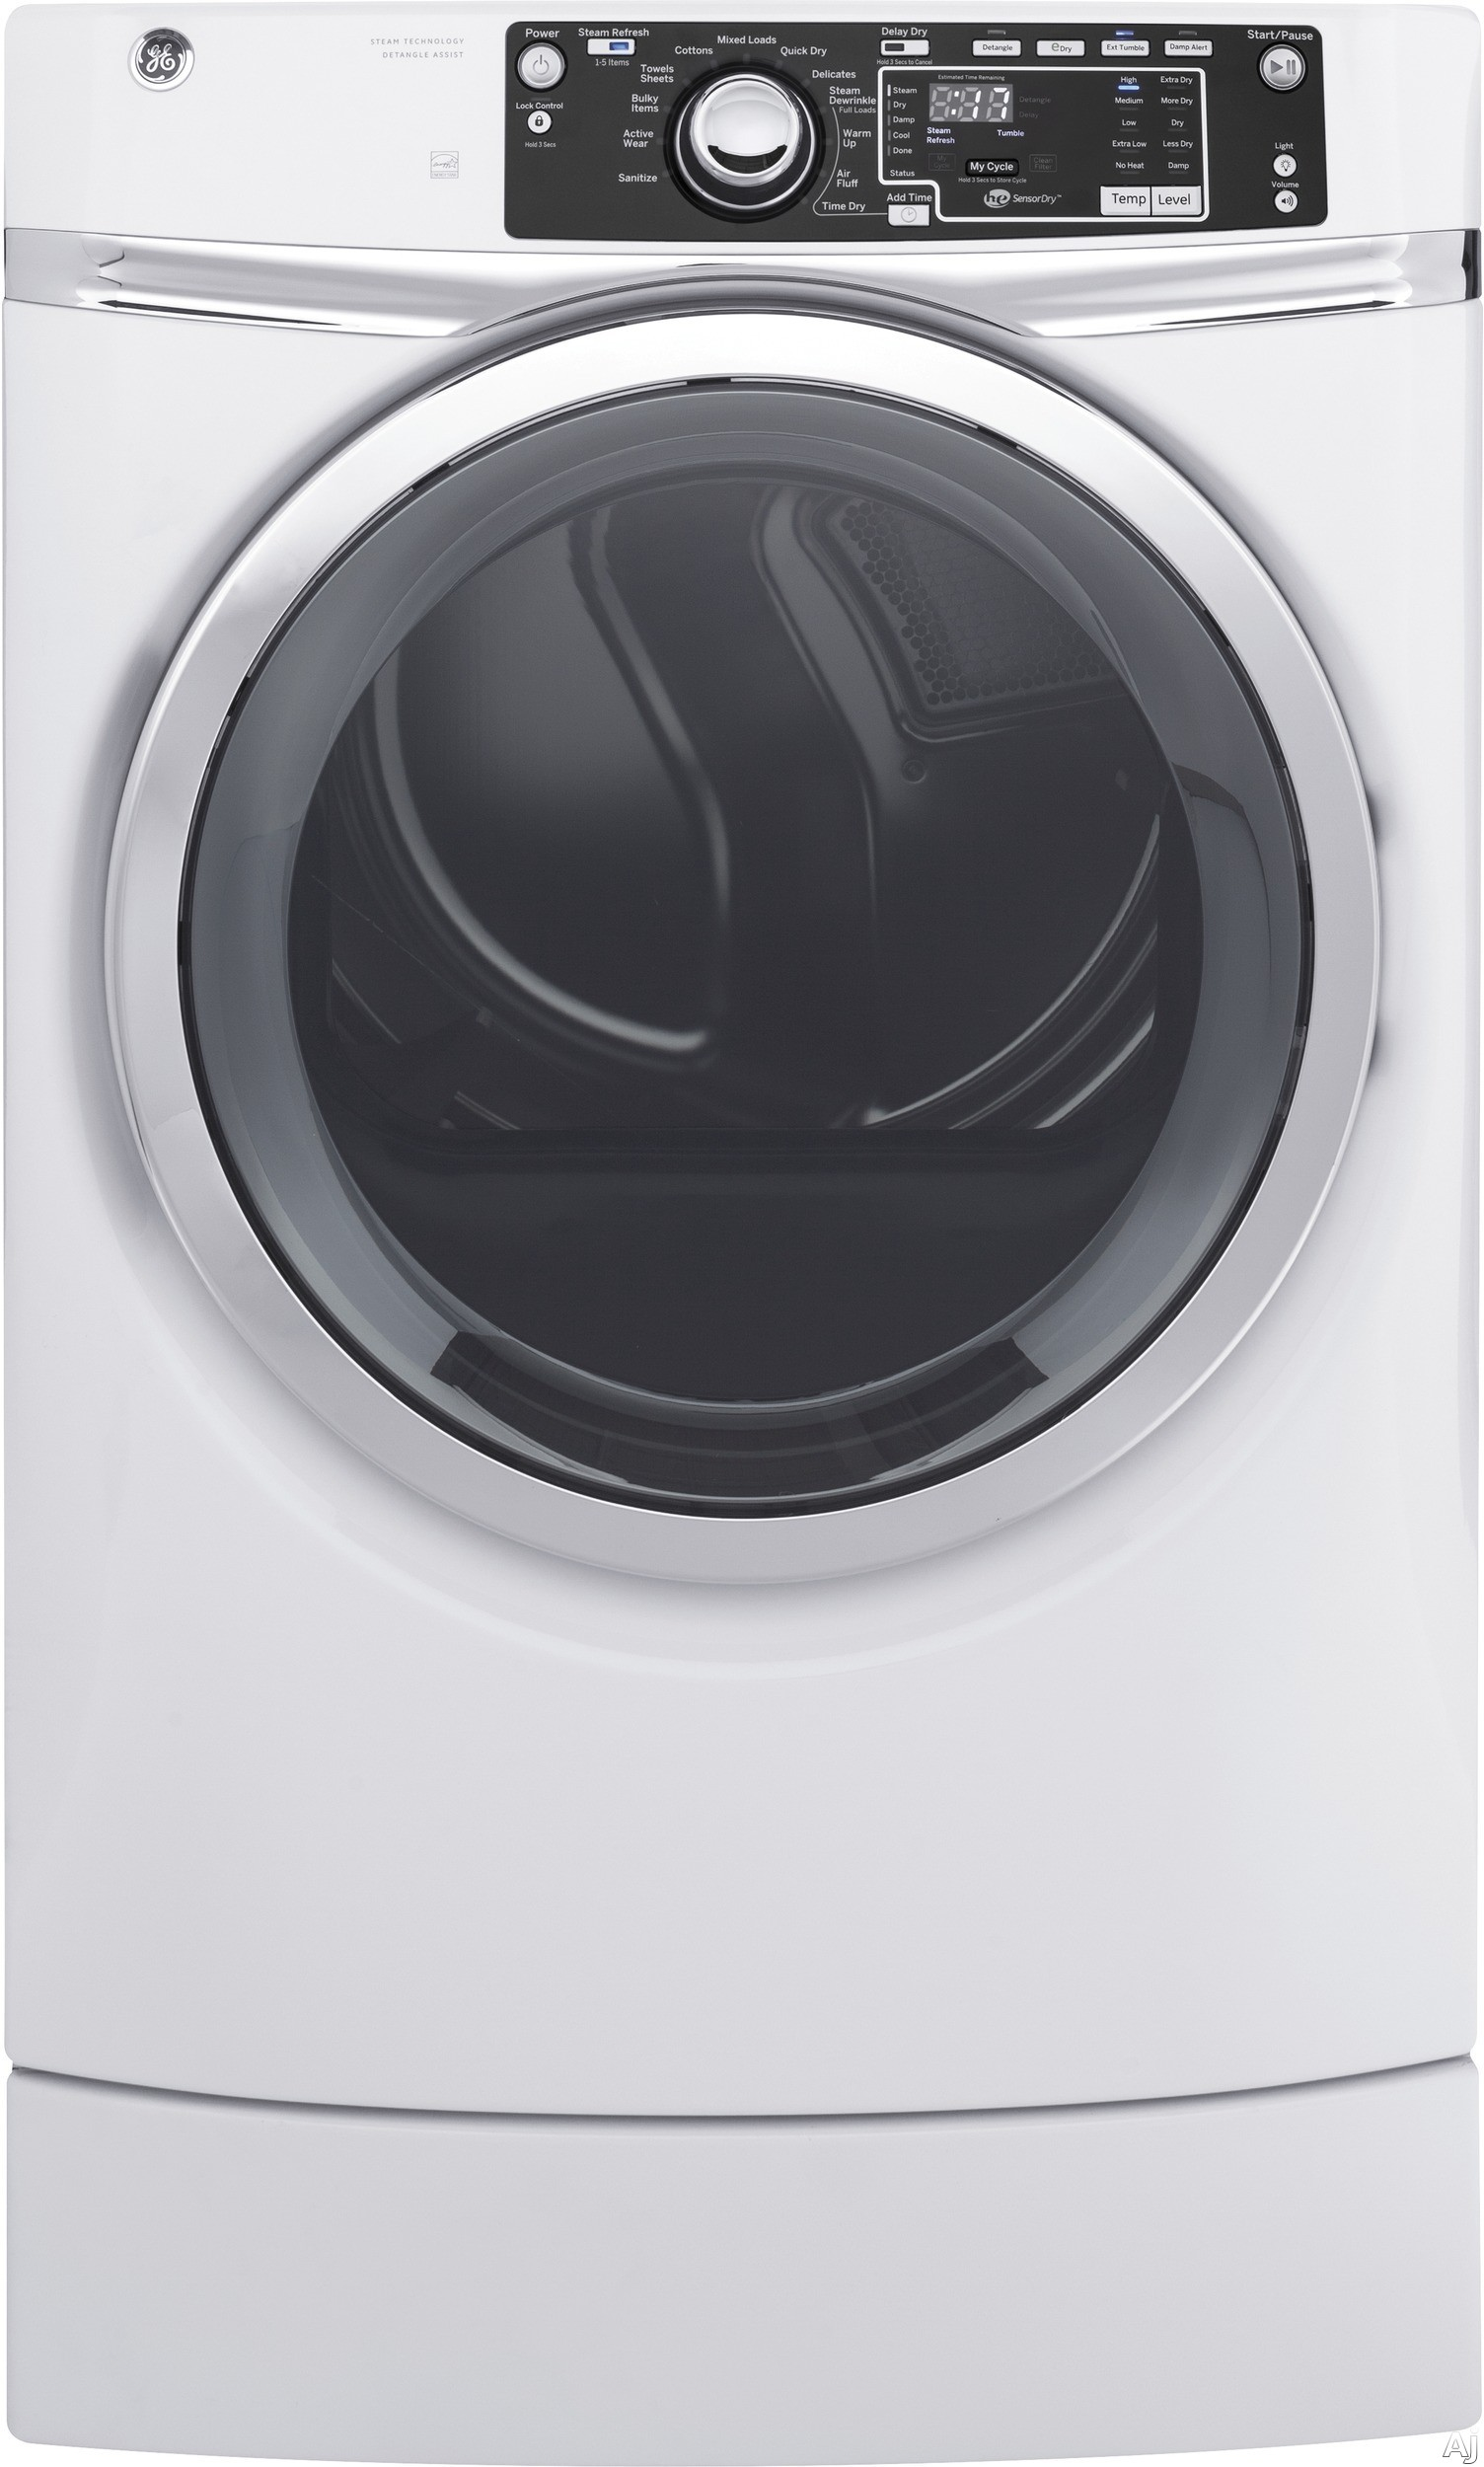 GE RightHeight Design Series GFD49E 28 Inch Electric Dryer with 8.3 cu. ft. Capacity, 13 Dry Cycles, RightHeight Built-In Pedestal, Steam, Sanitize Cycle, Detangle Assist, HE Sensor Dry, ADA Compliant Design and ENERGY STAR